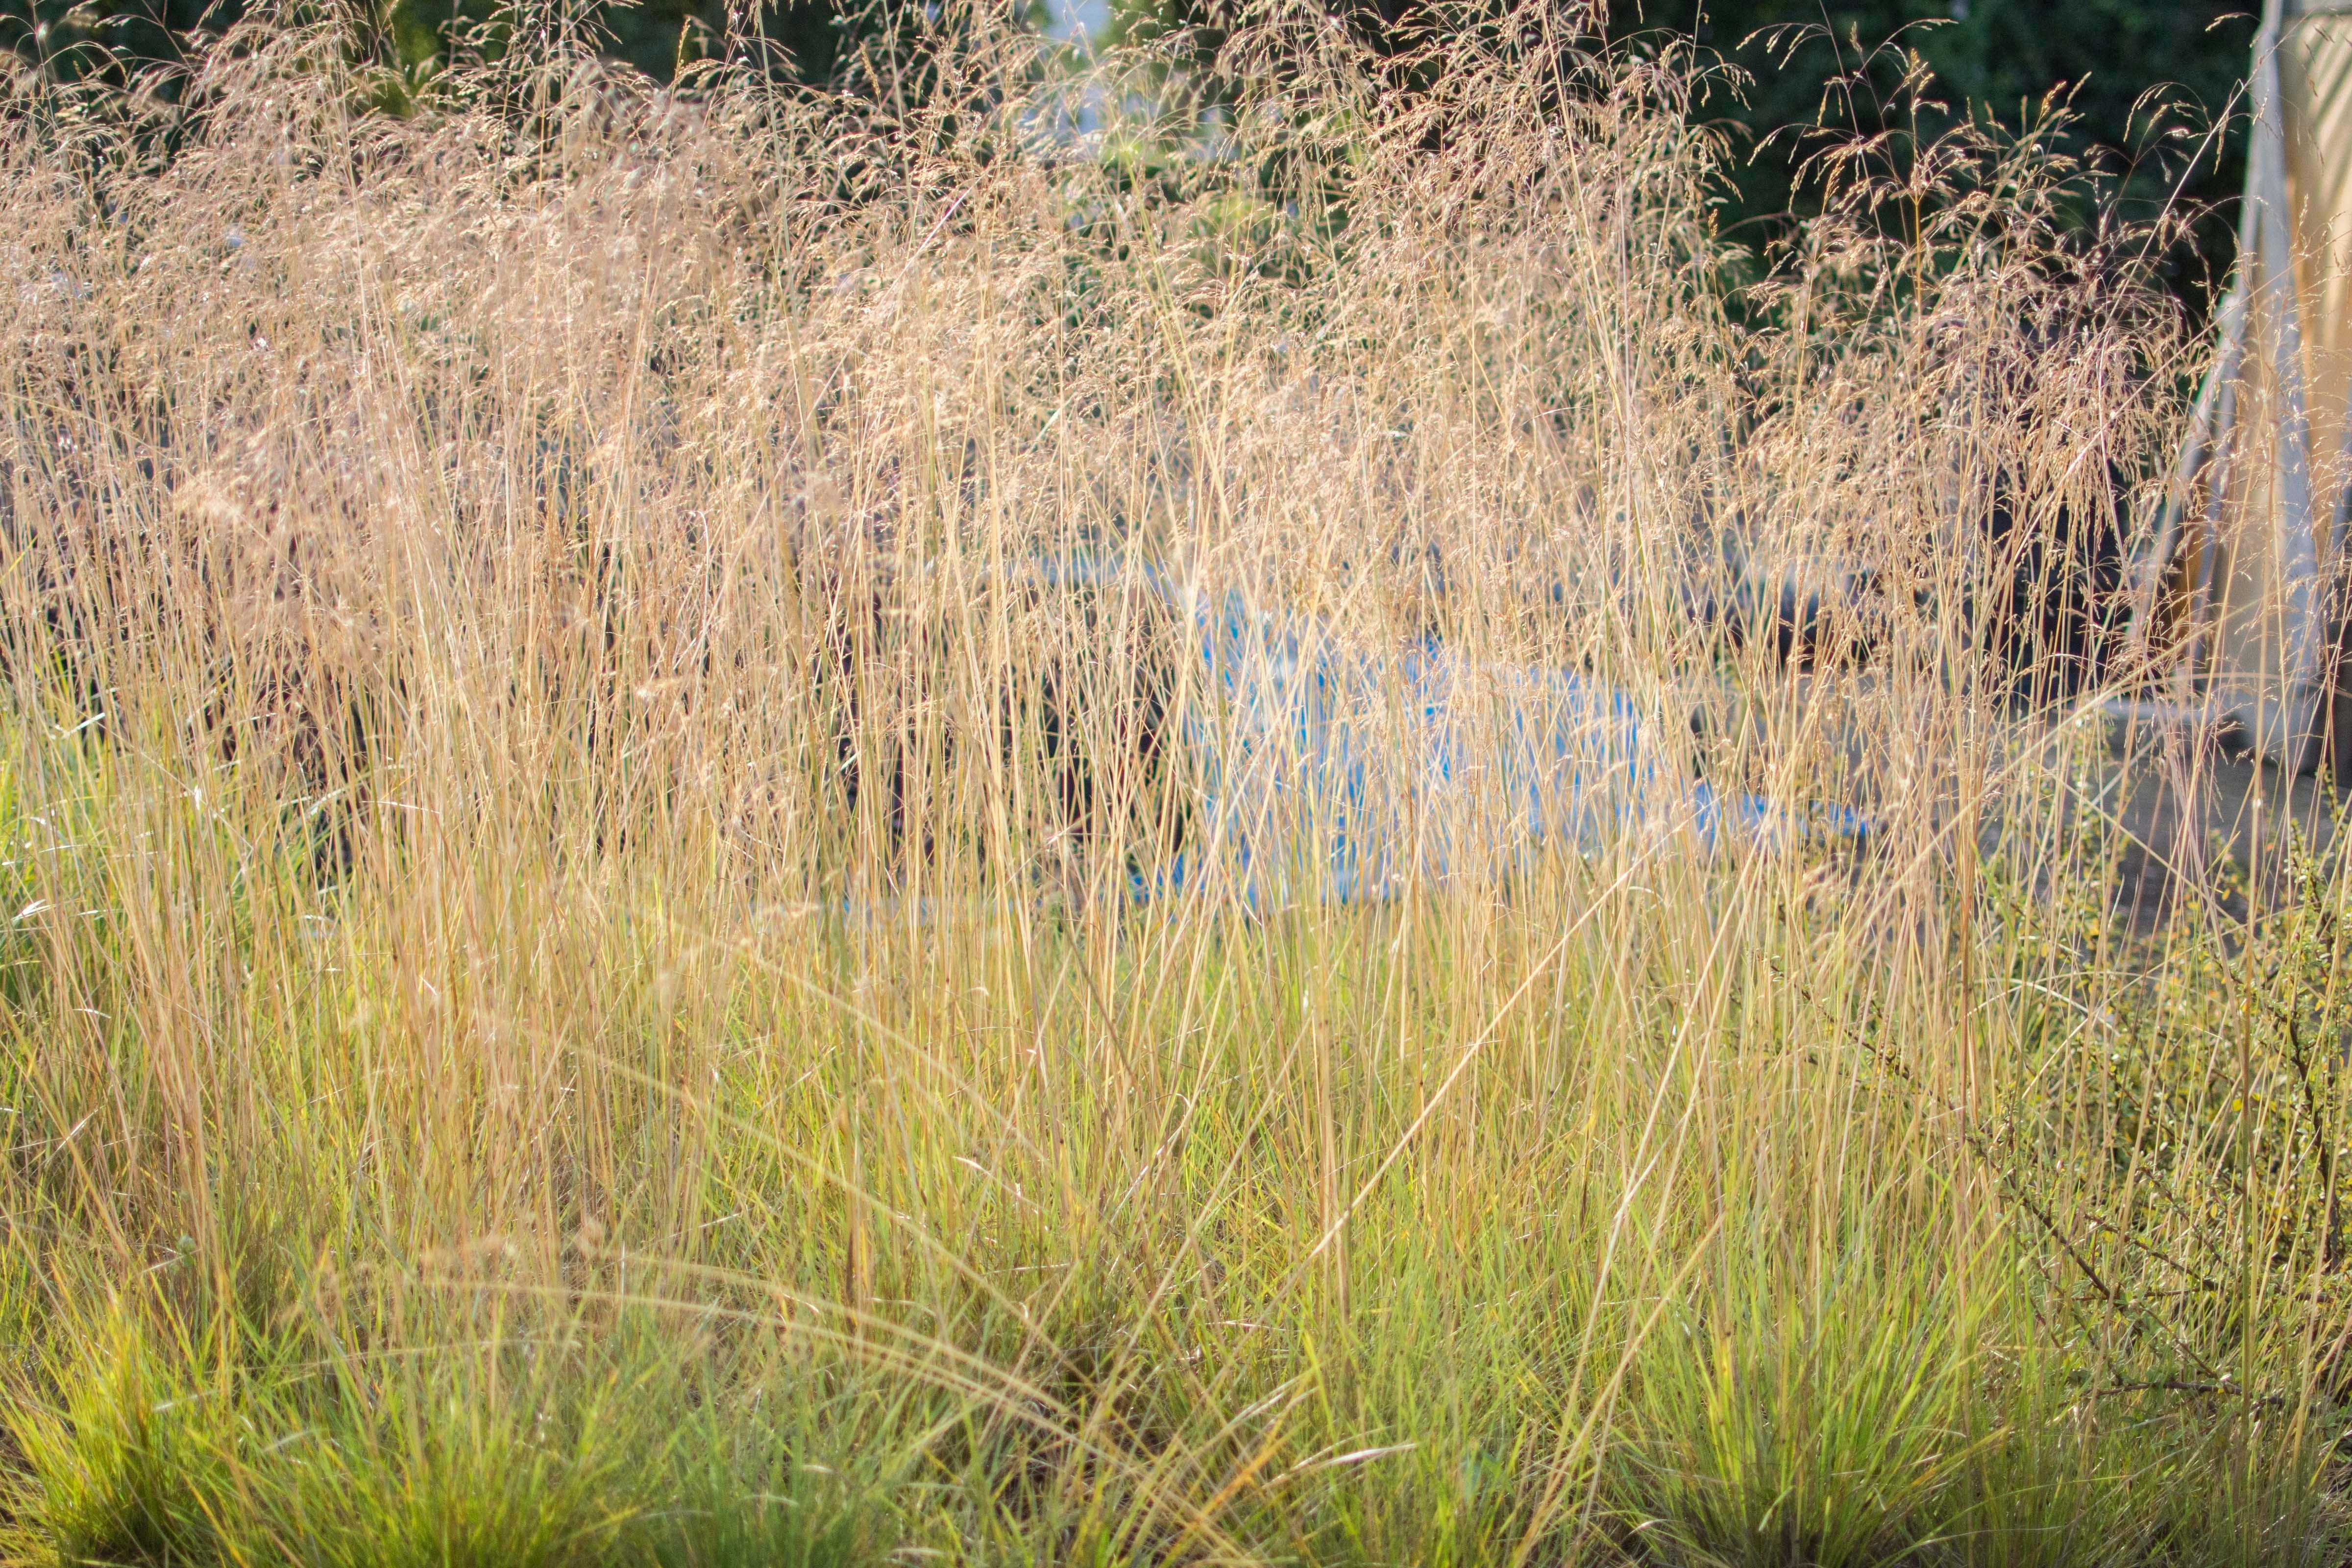 Ornamental grasses of puget sound in olympia wa 98506 for Ornamental pond supplies